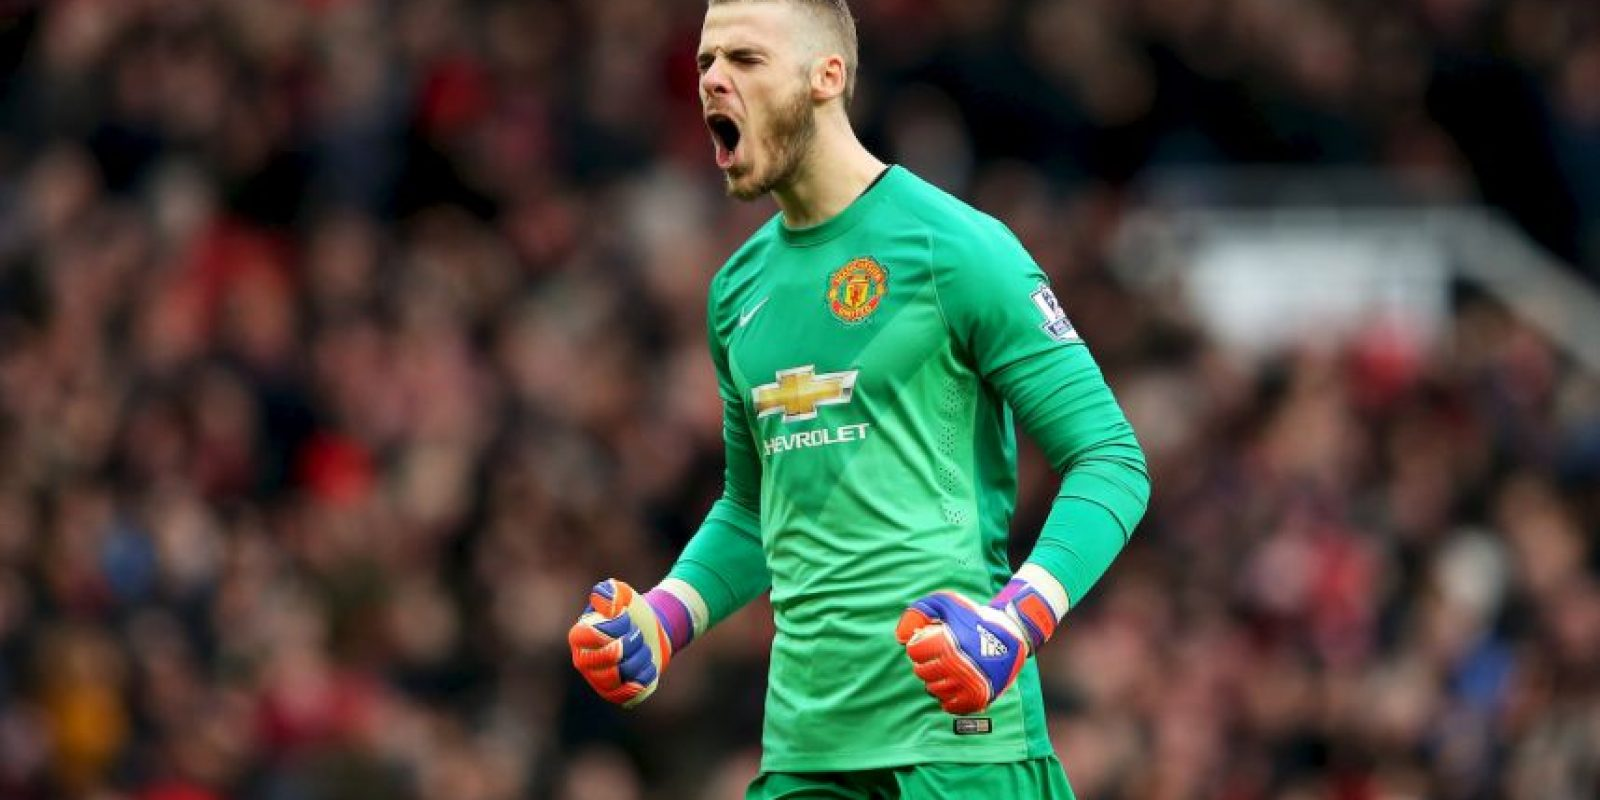 4. David de Gea Foto: Getty Images